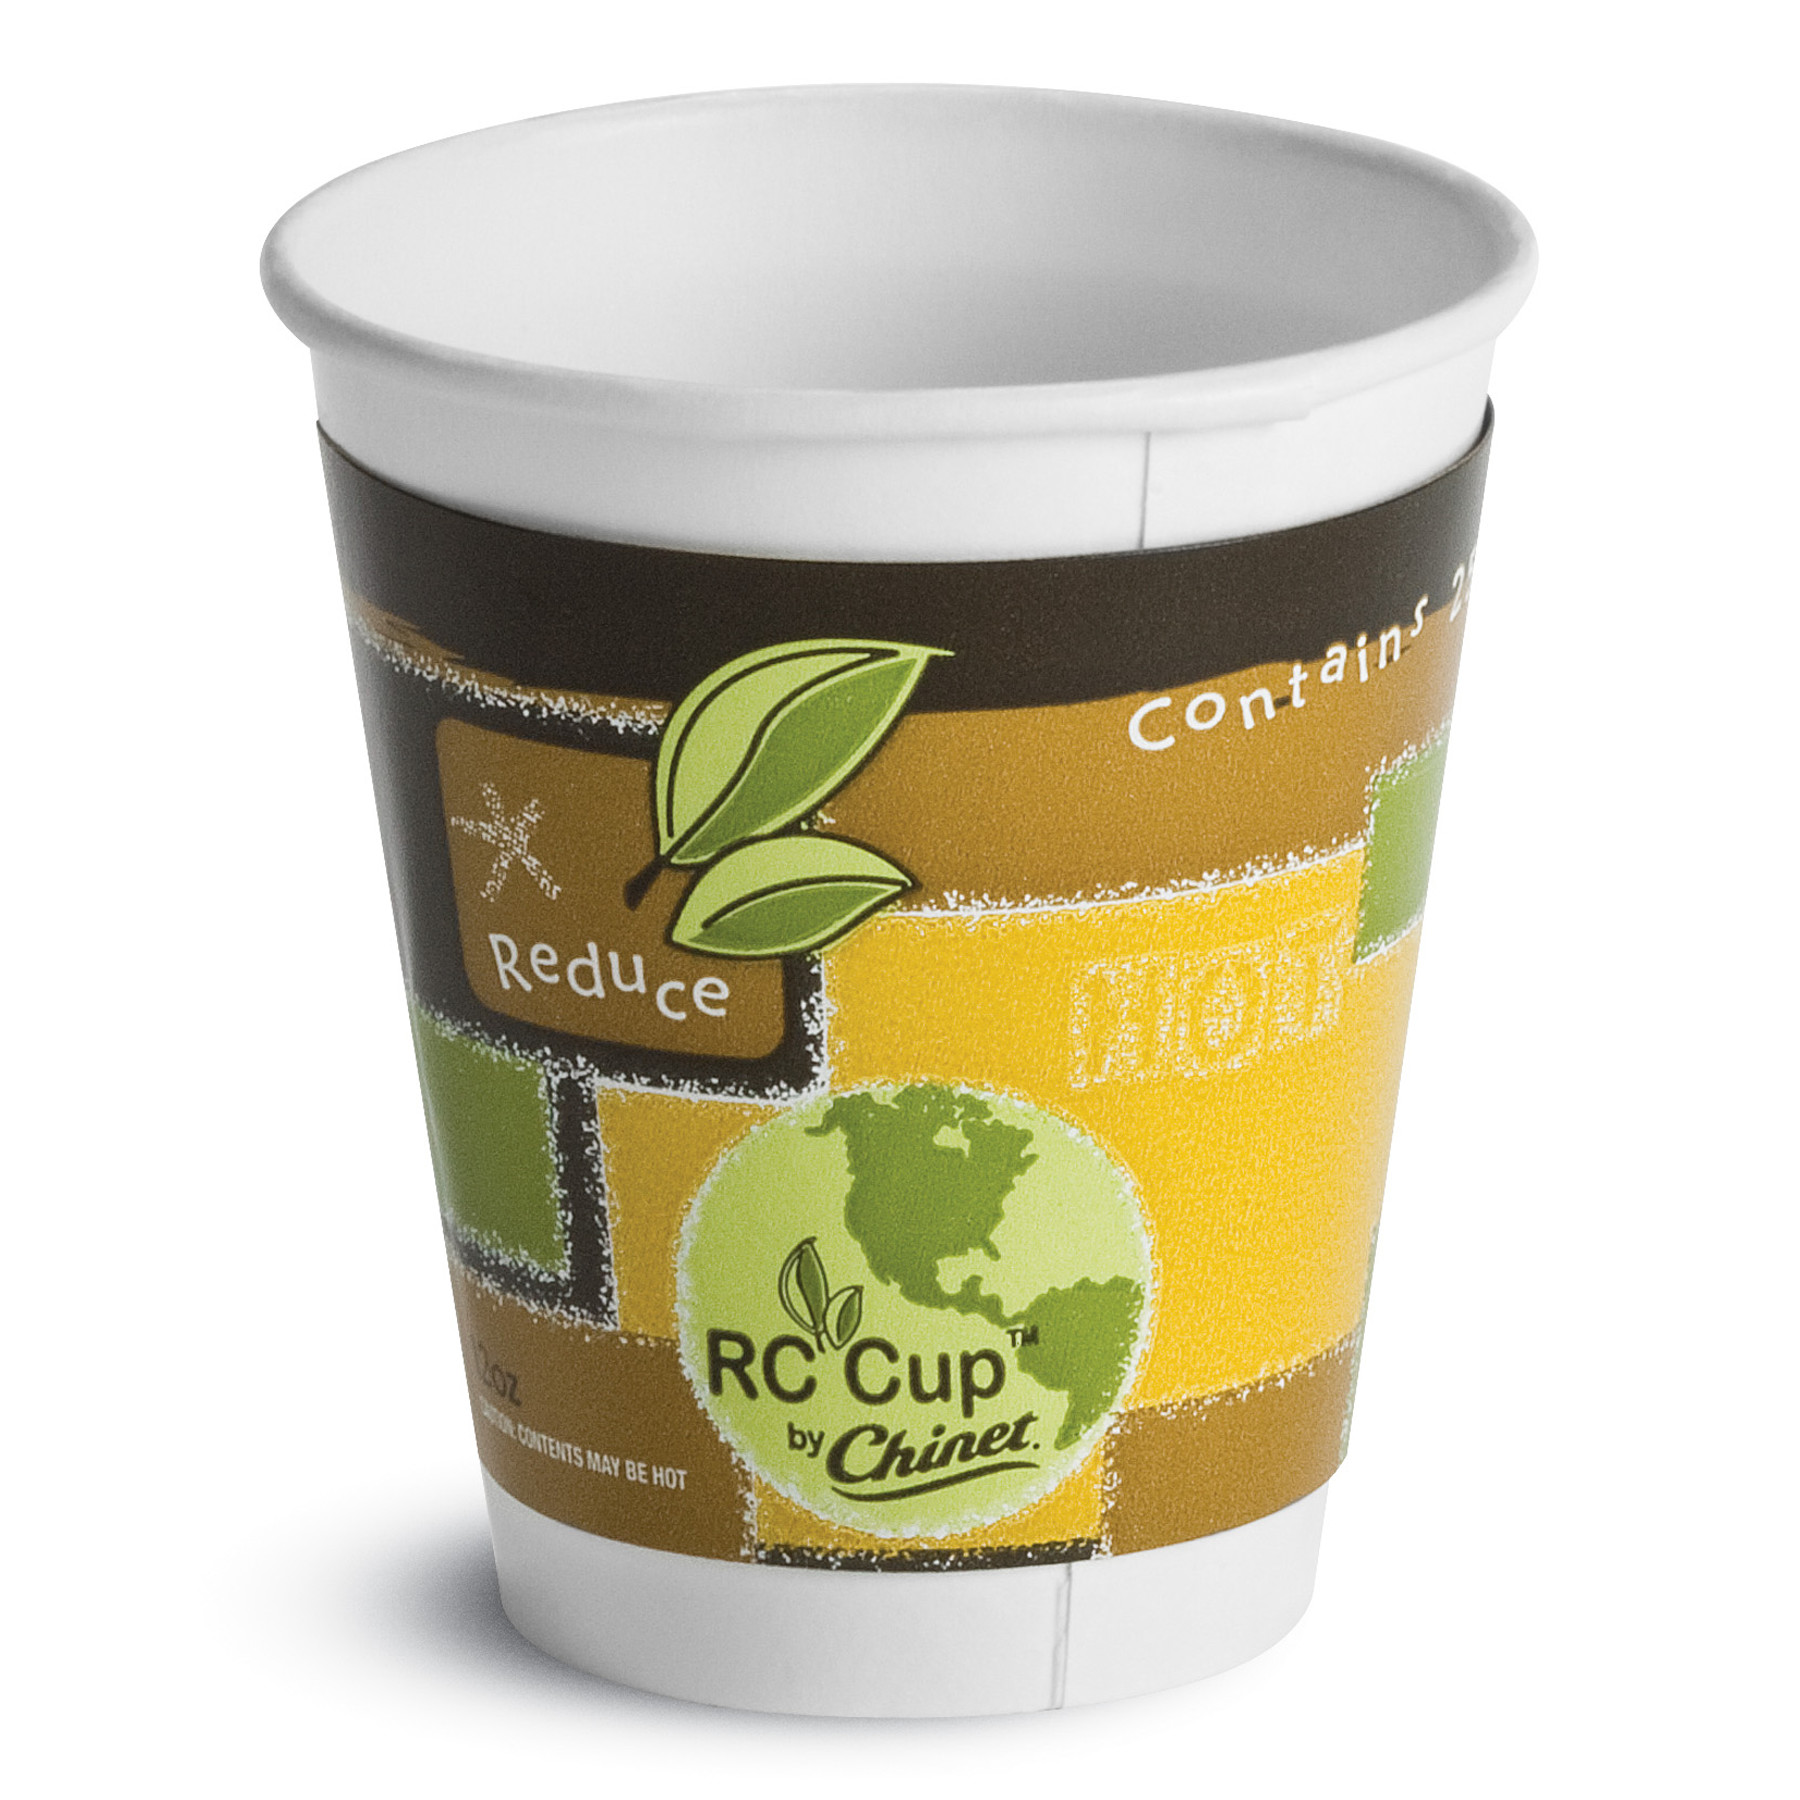 Chinet Insulated Hot Cups, 12 oz, White, 645/Carton